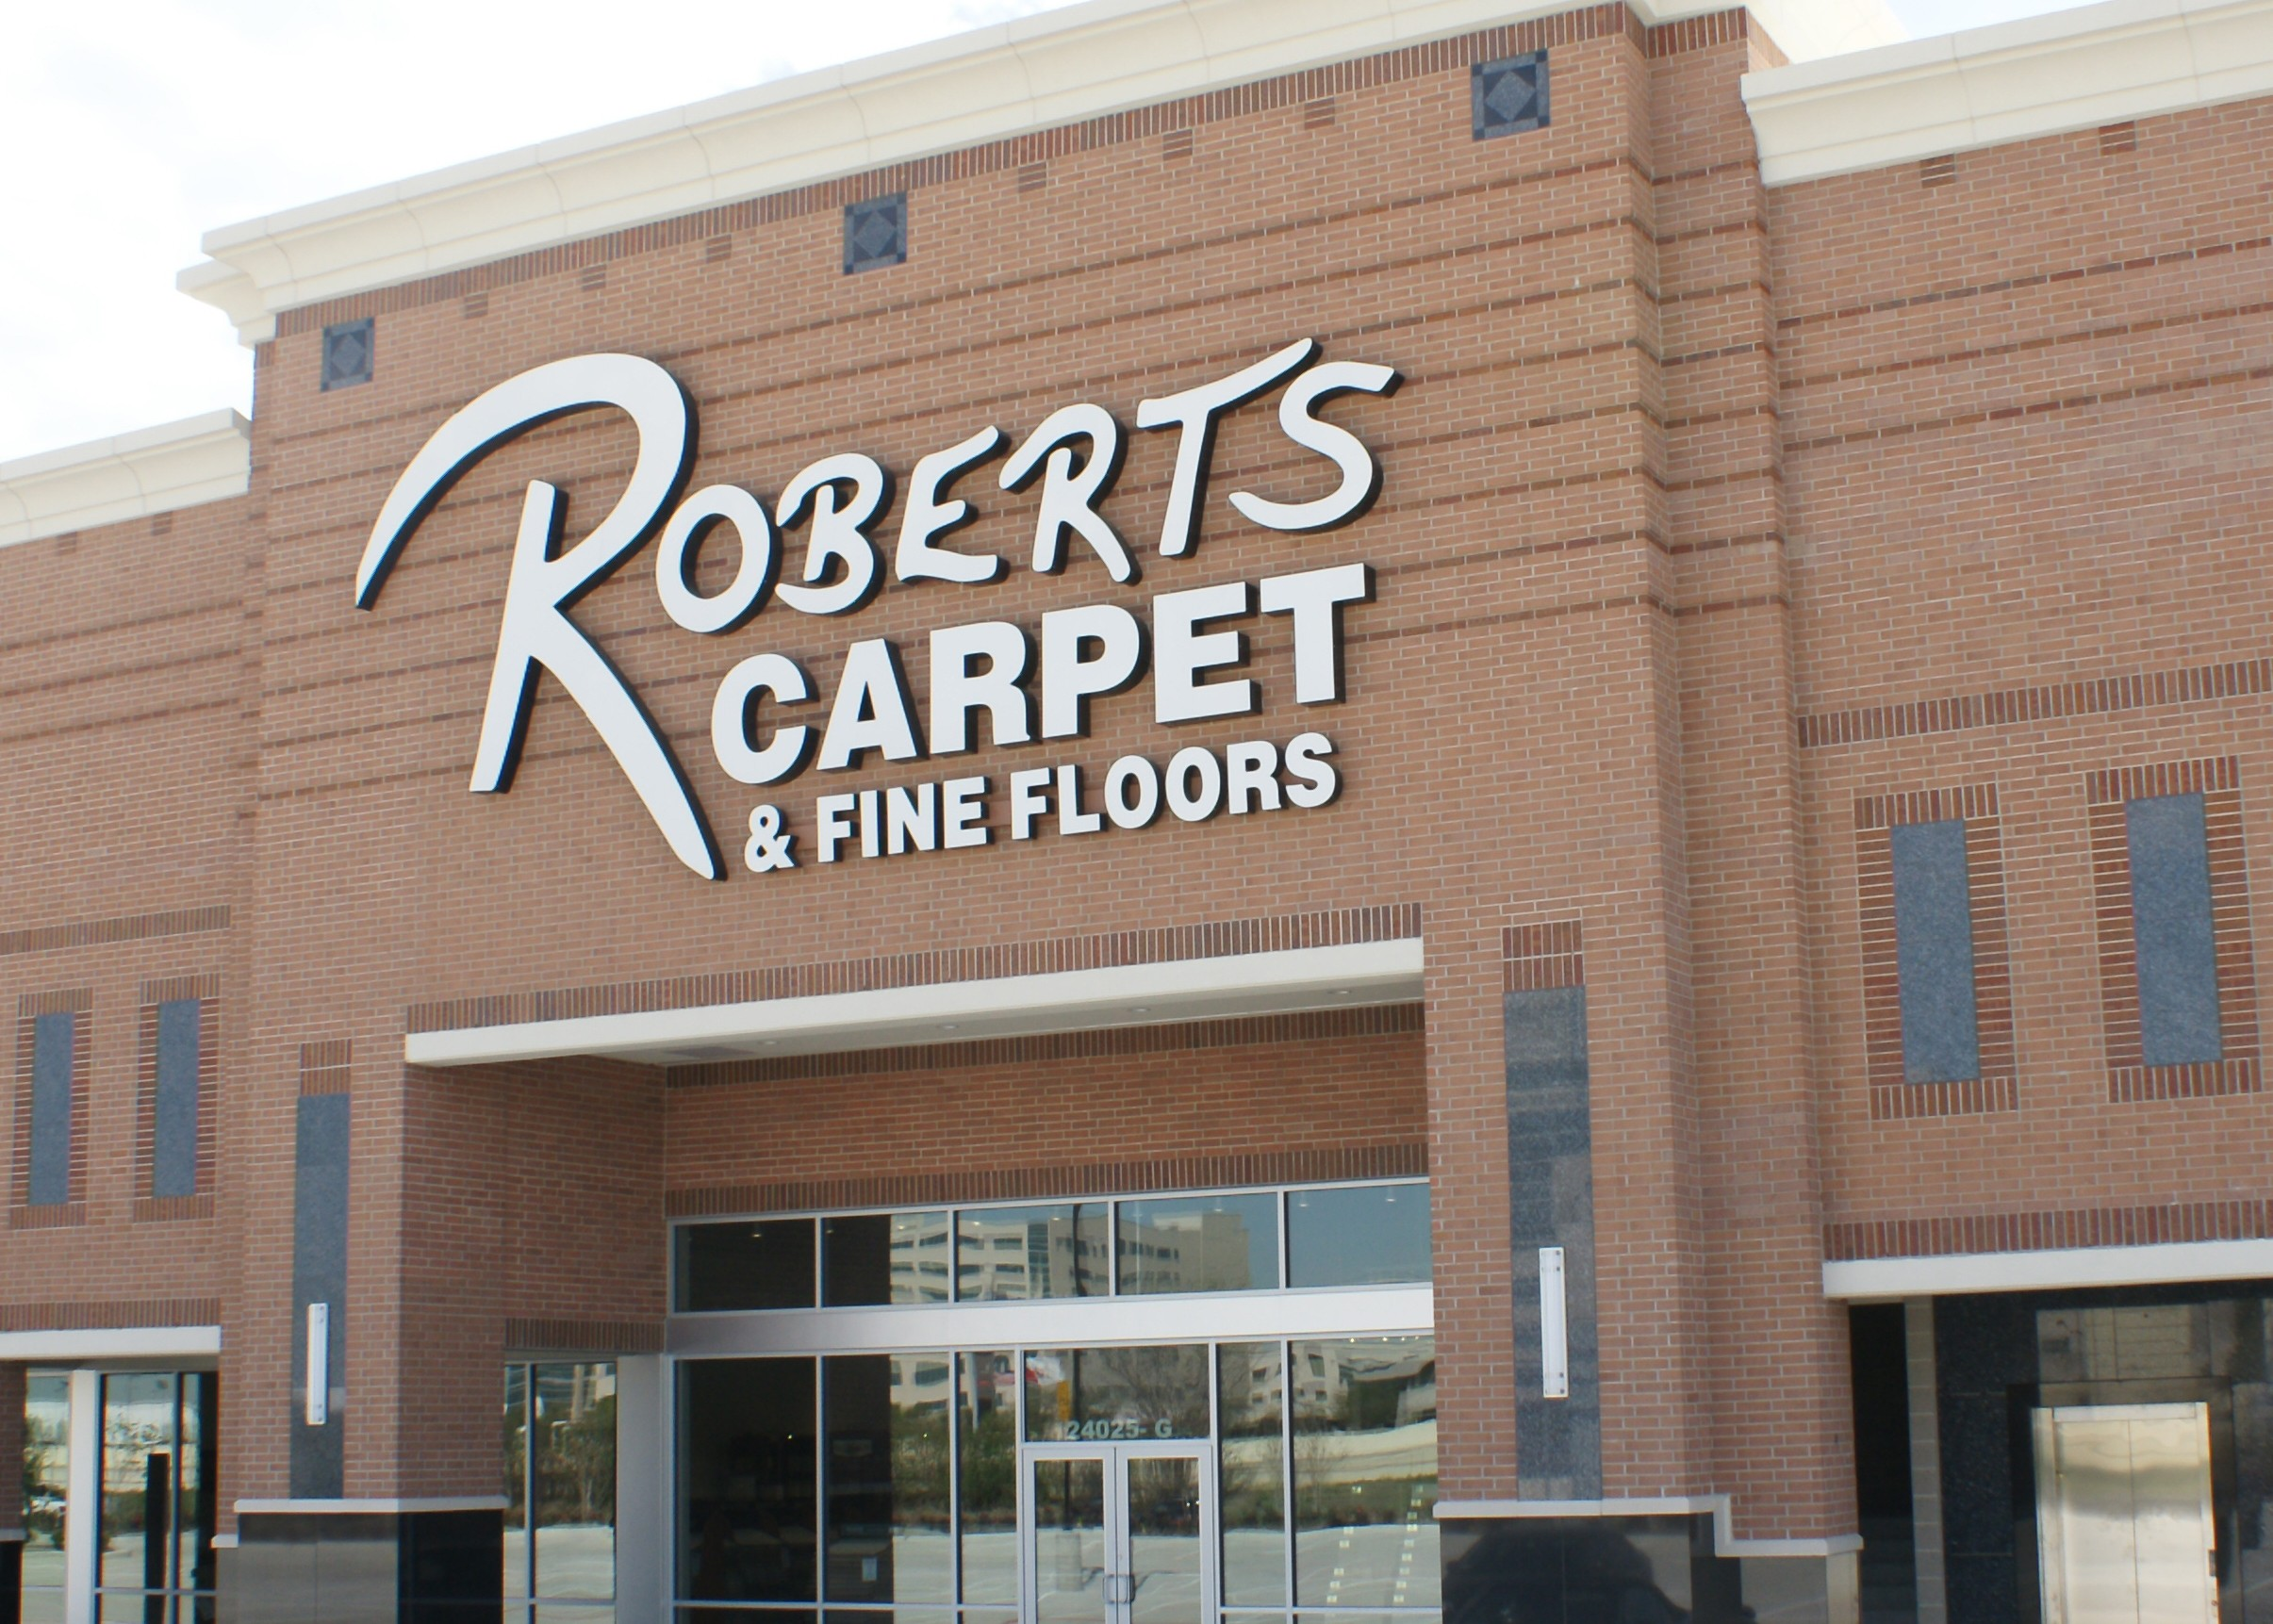 Roberts carpet and fine floors | Roberts Carpet & Fine Floors